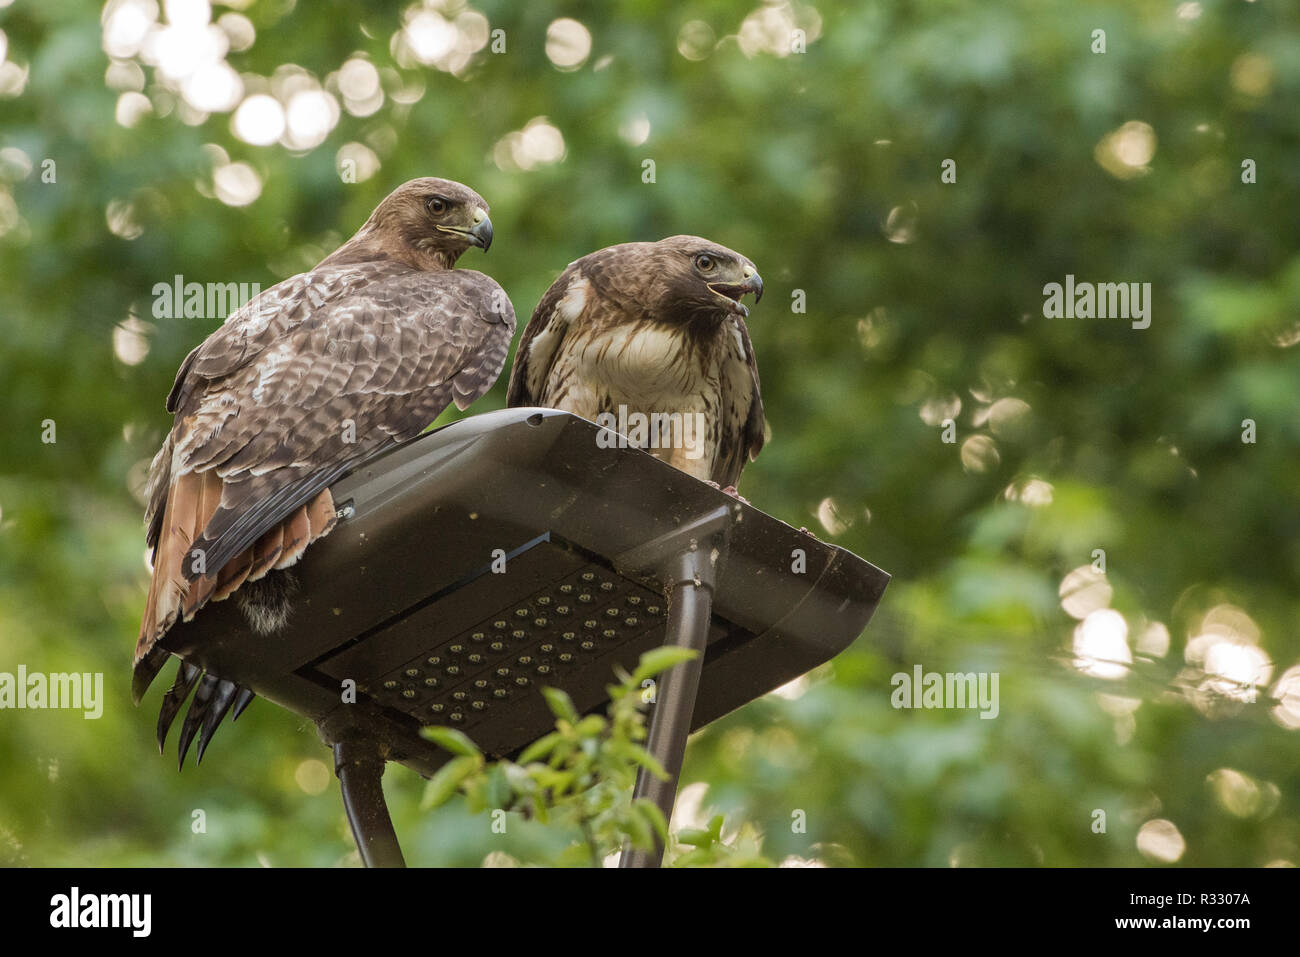 A Pair Of Wild Red Tailed Hawks Buteo Jamaicensis Sitting On A Light Pole Eating A Squirrel Together In North Carolina Usa Stock Photo Alamy